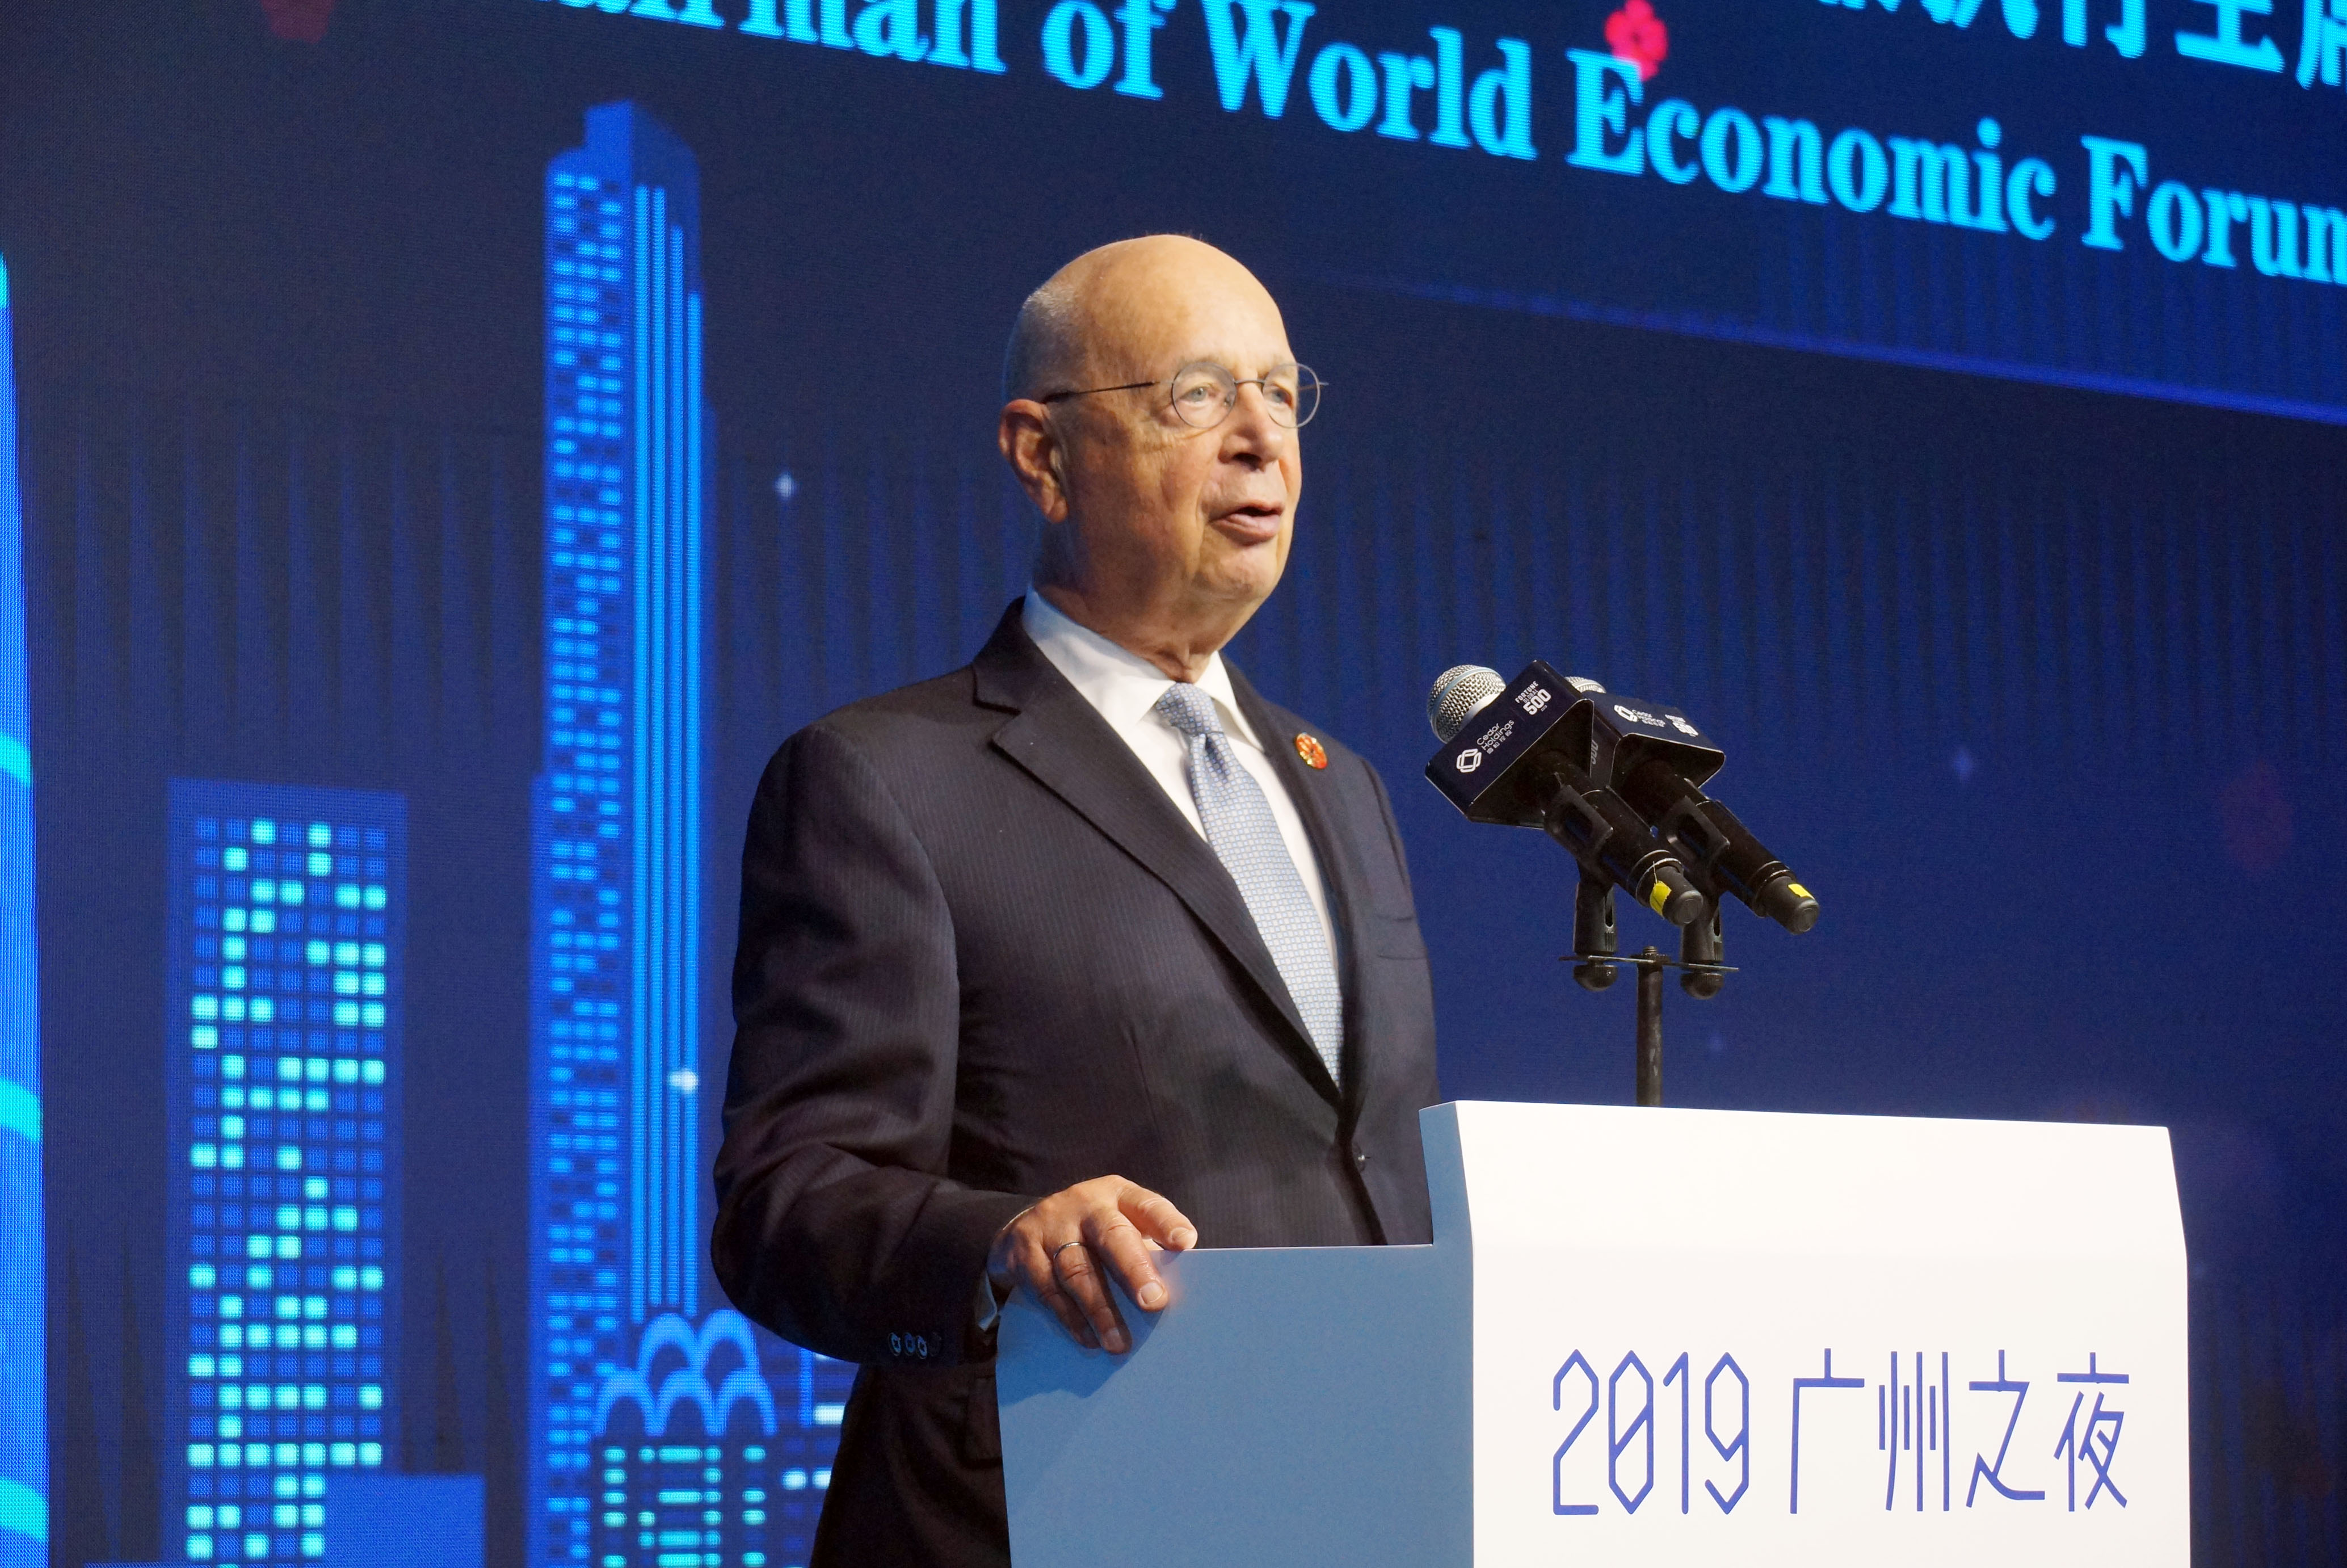 Klaus Schwab, founder of the World Economic Forum